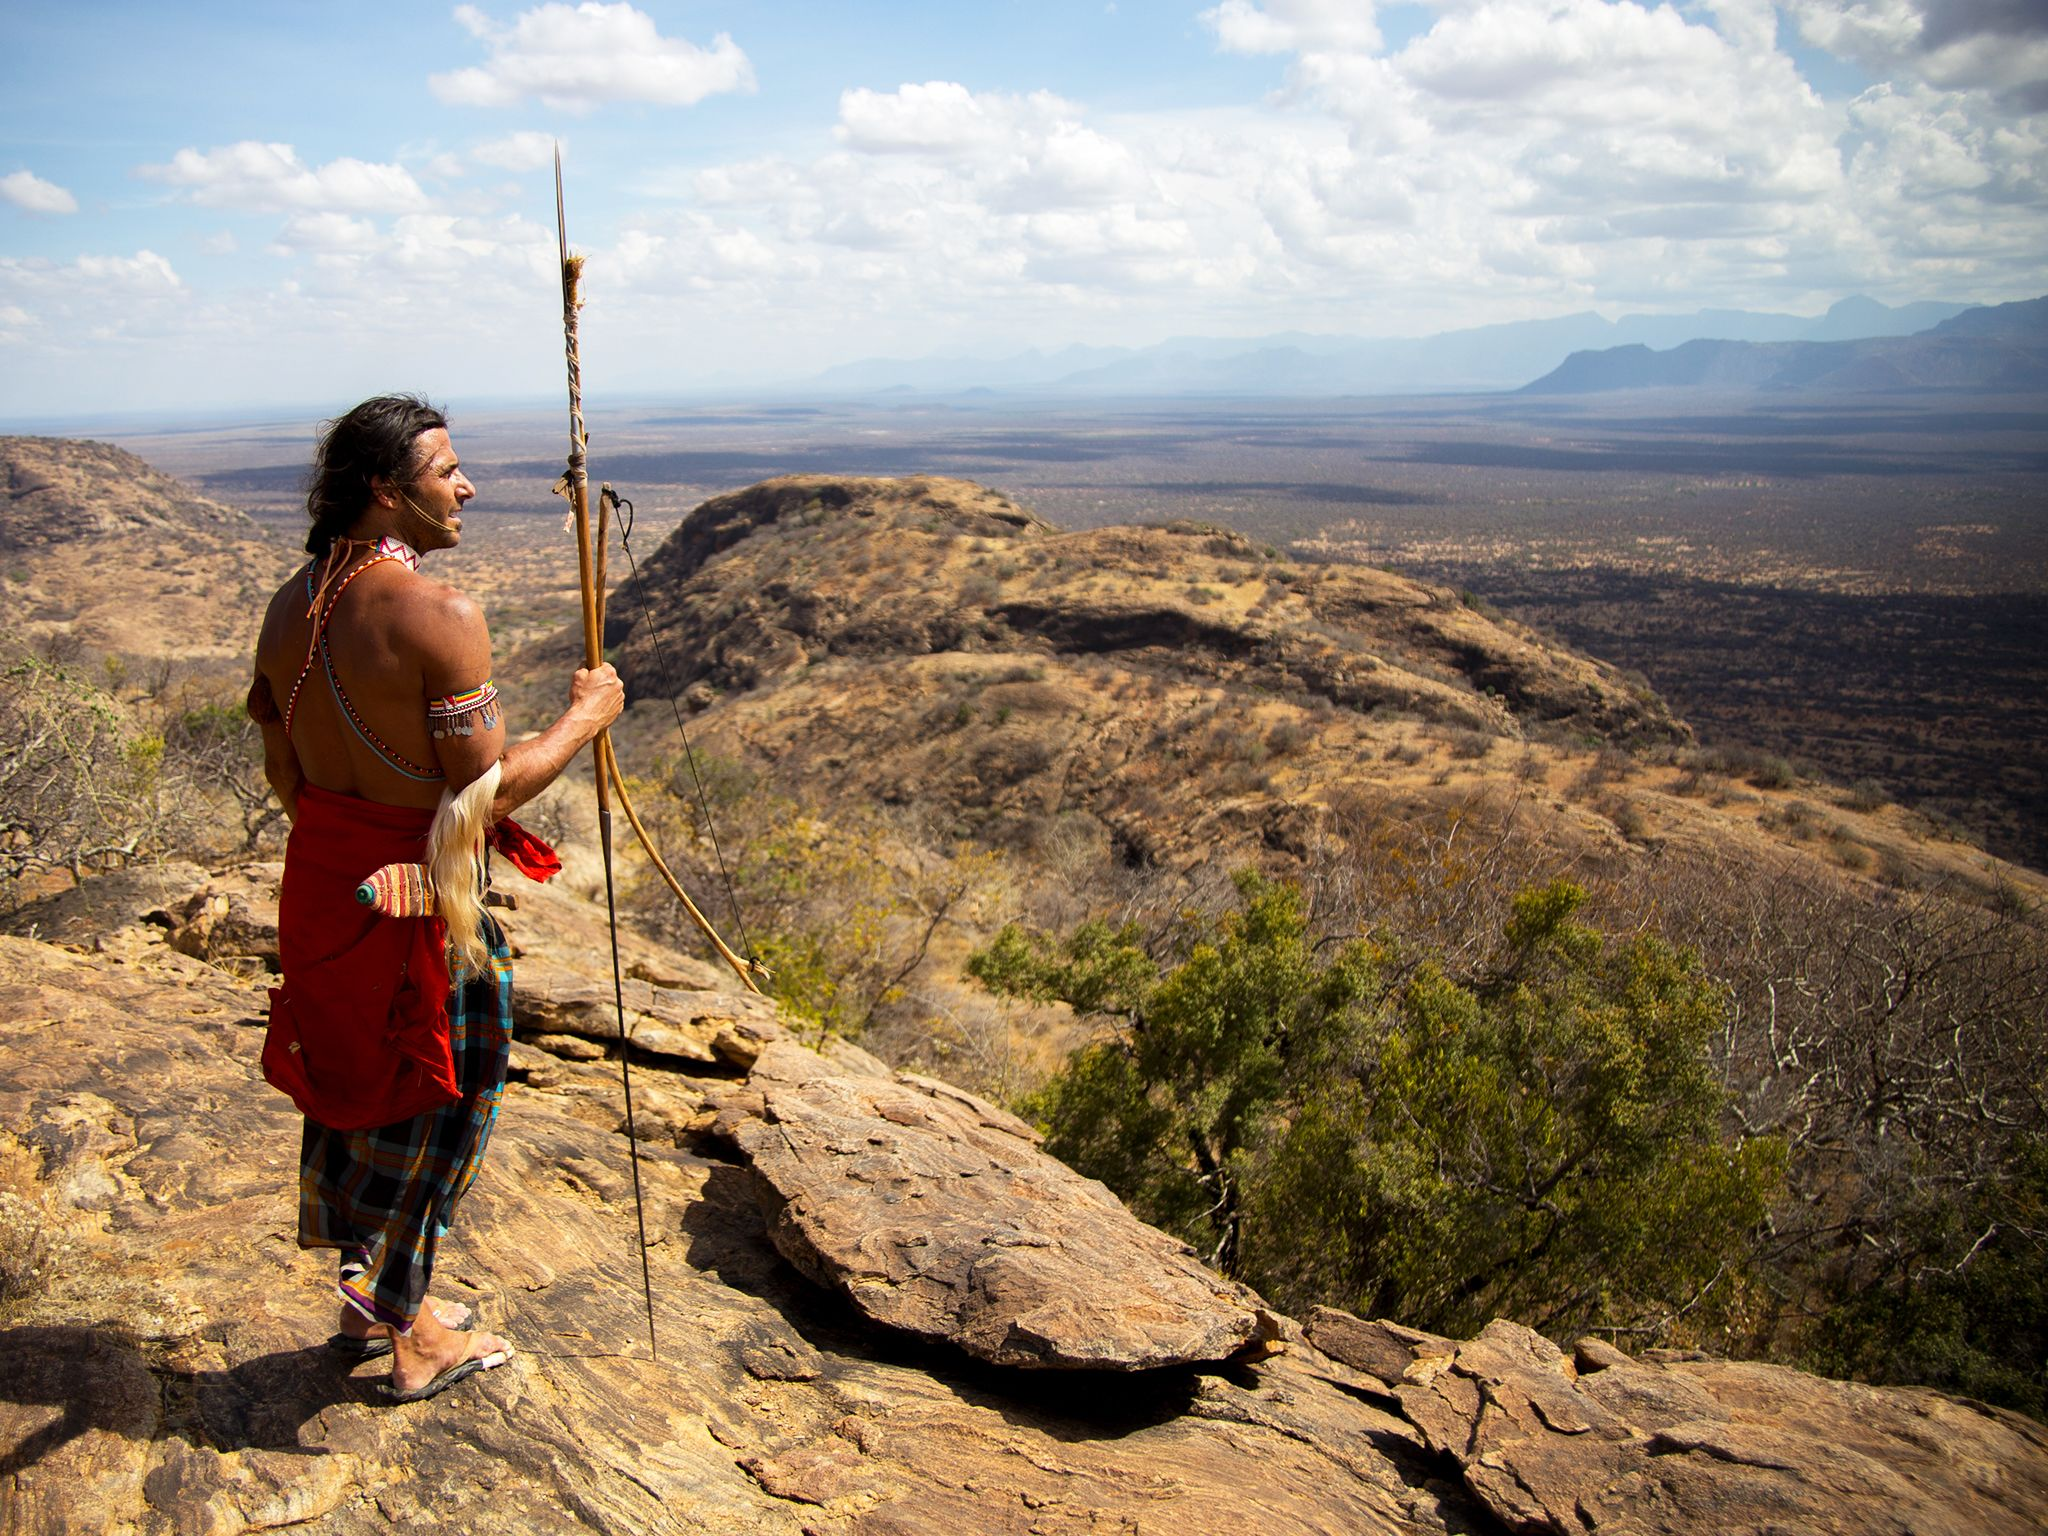 Mpagas, Kenya: Hazen Audel looking over the cliff edge. This image is from Survive The Tribe. [Photo of the day - سپتامبر 2014]